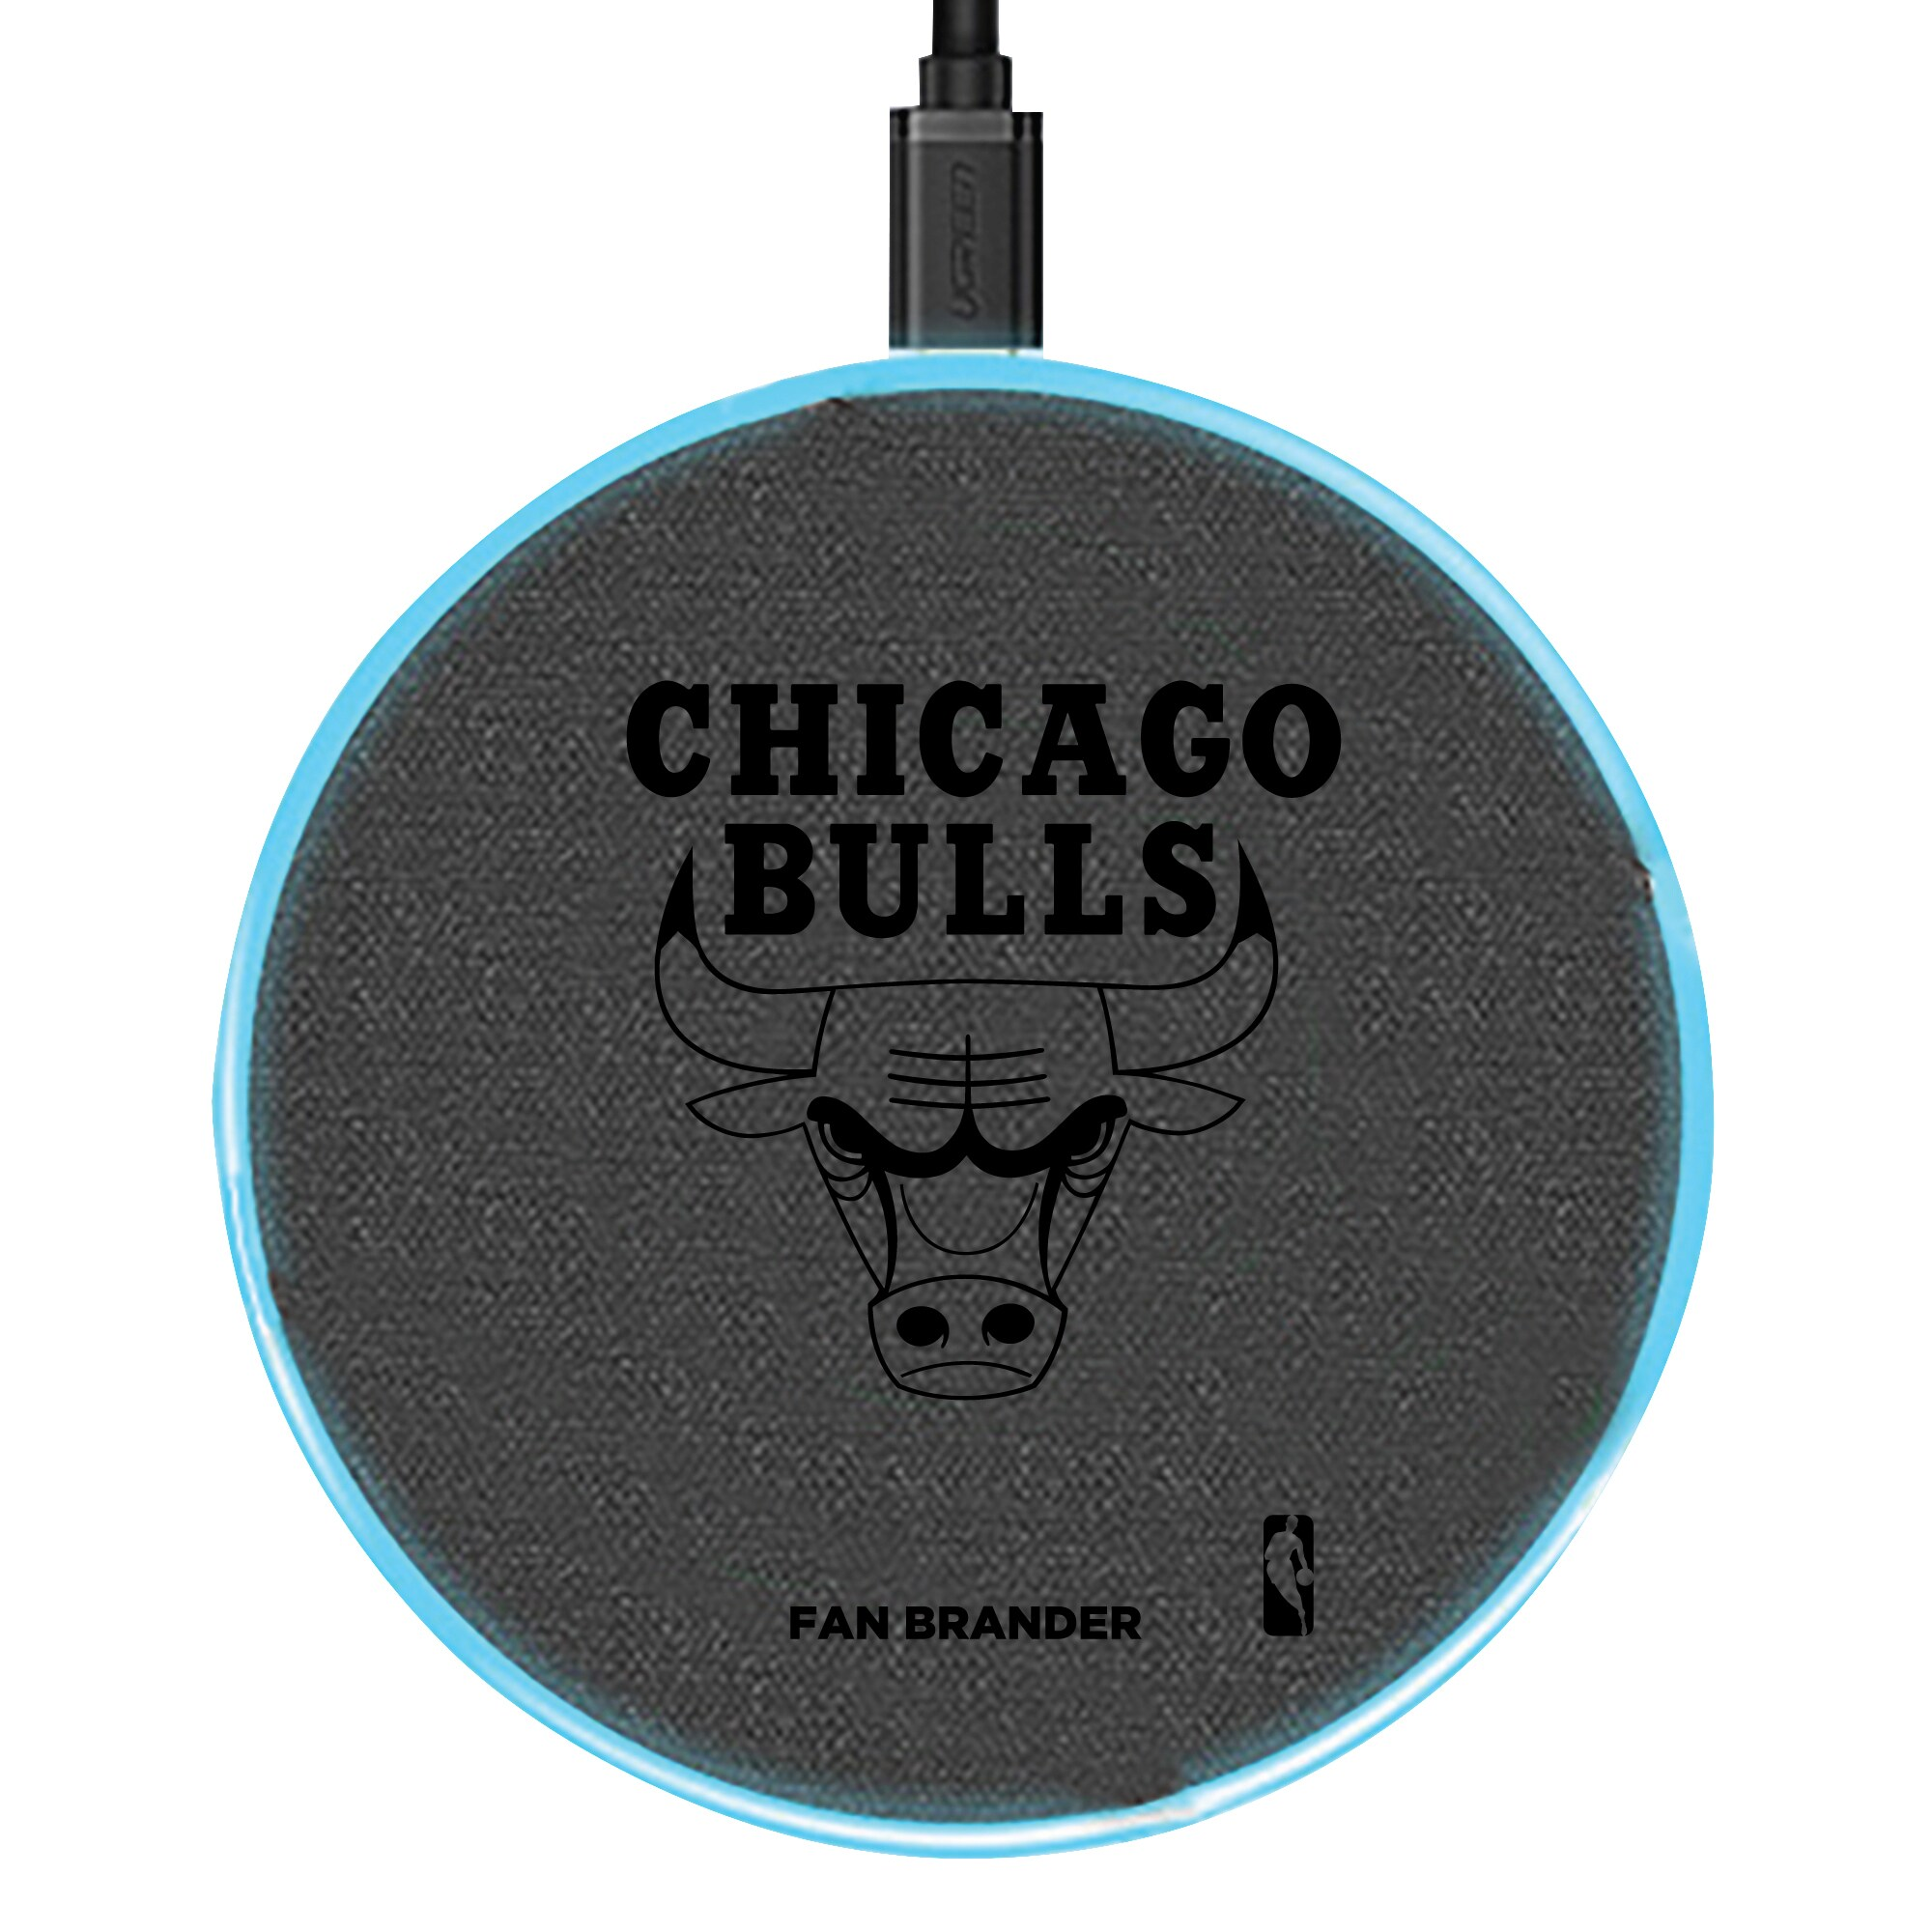 Chicago Bulls 15W Laser Etched Wireless Charging Base - Gray